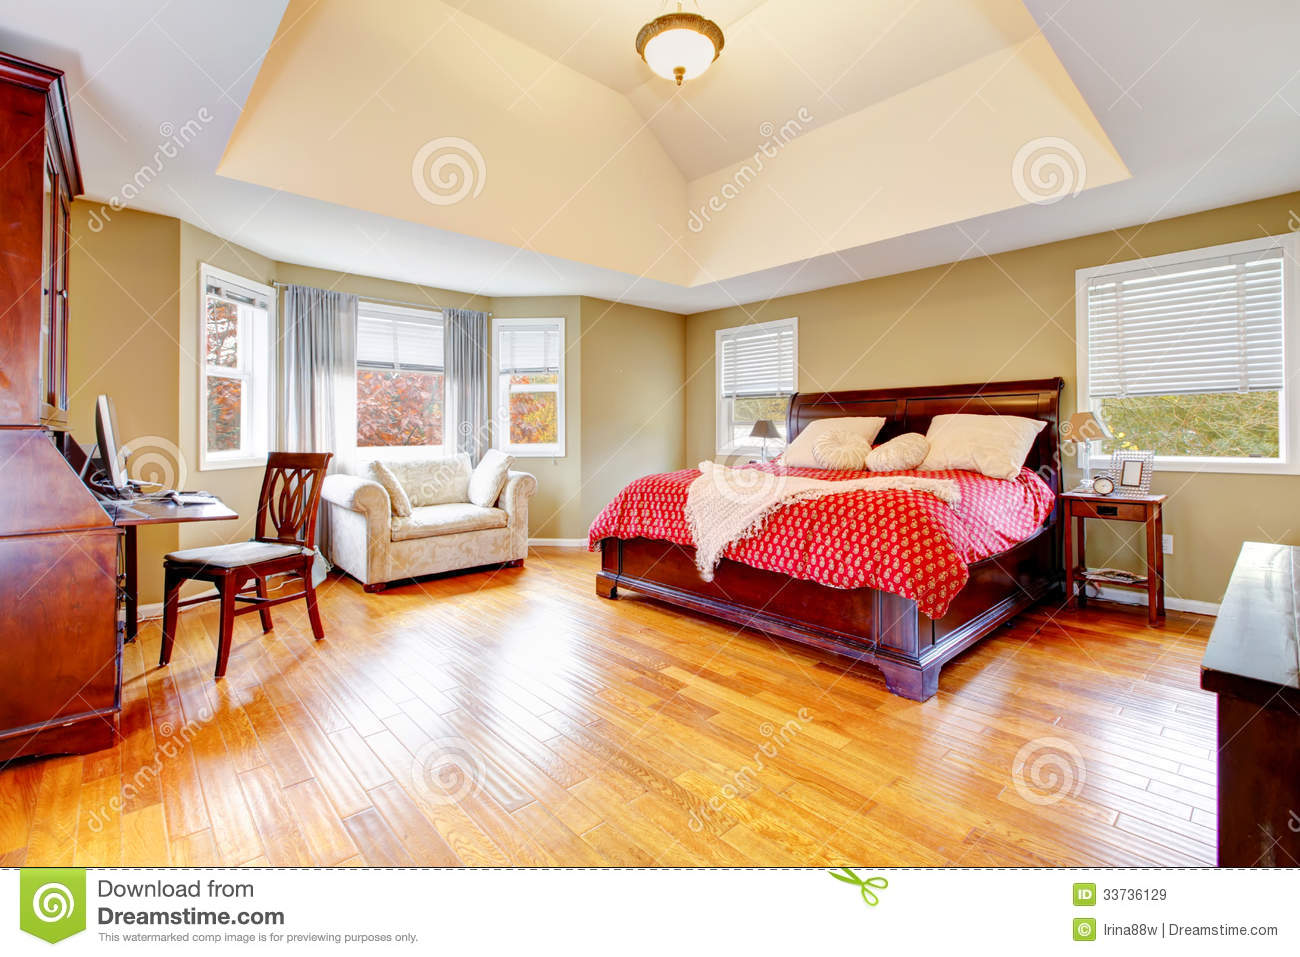 Large master bedroom interior with green alls and hardwood floor